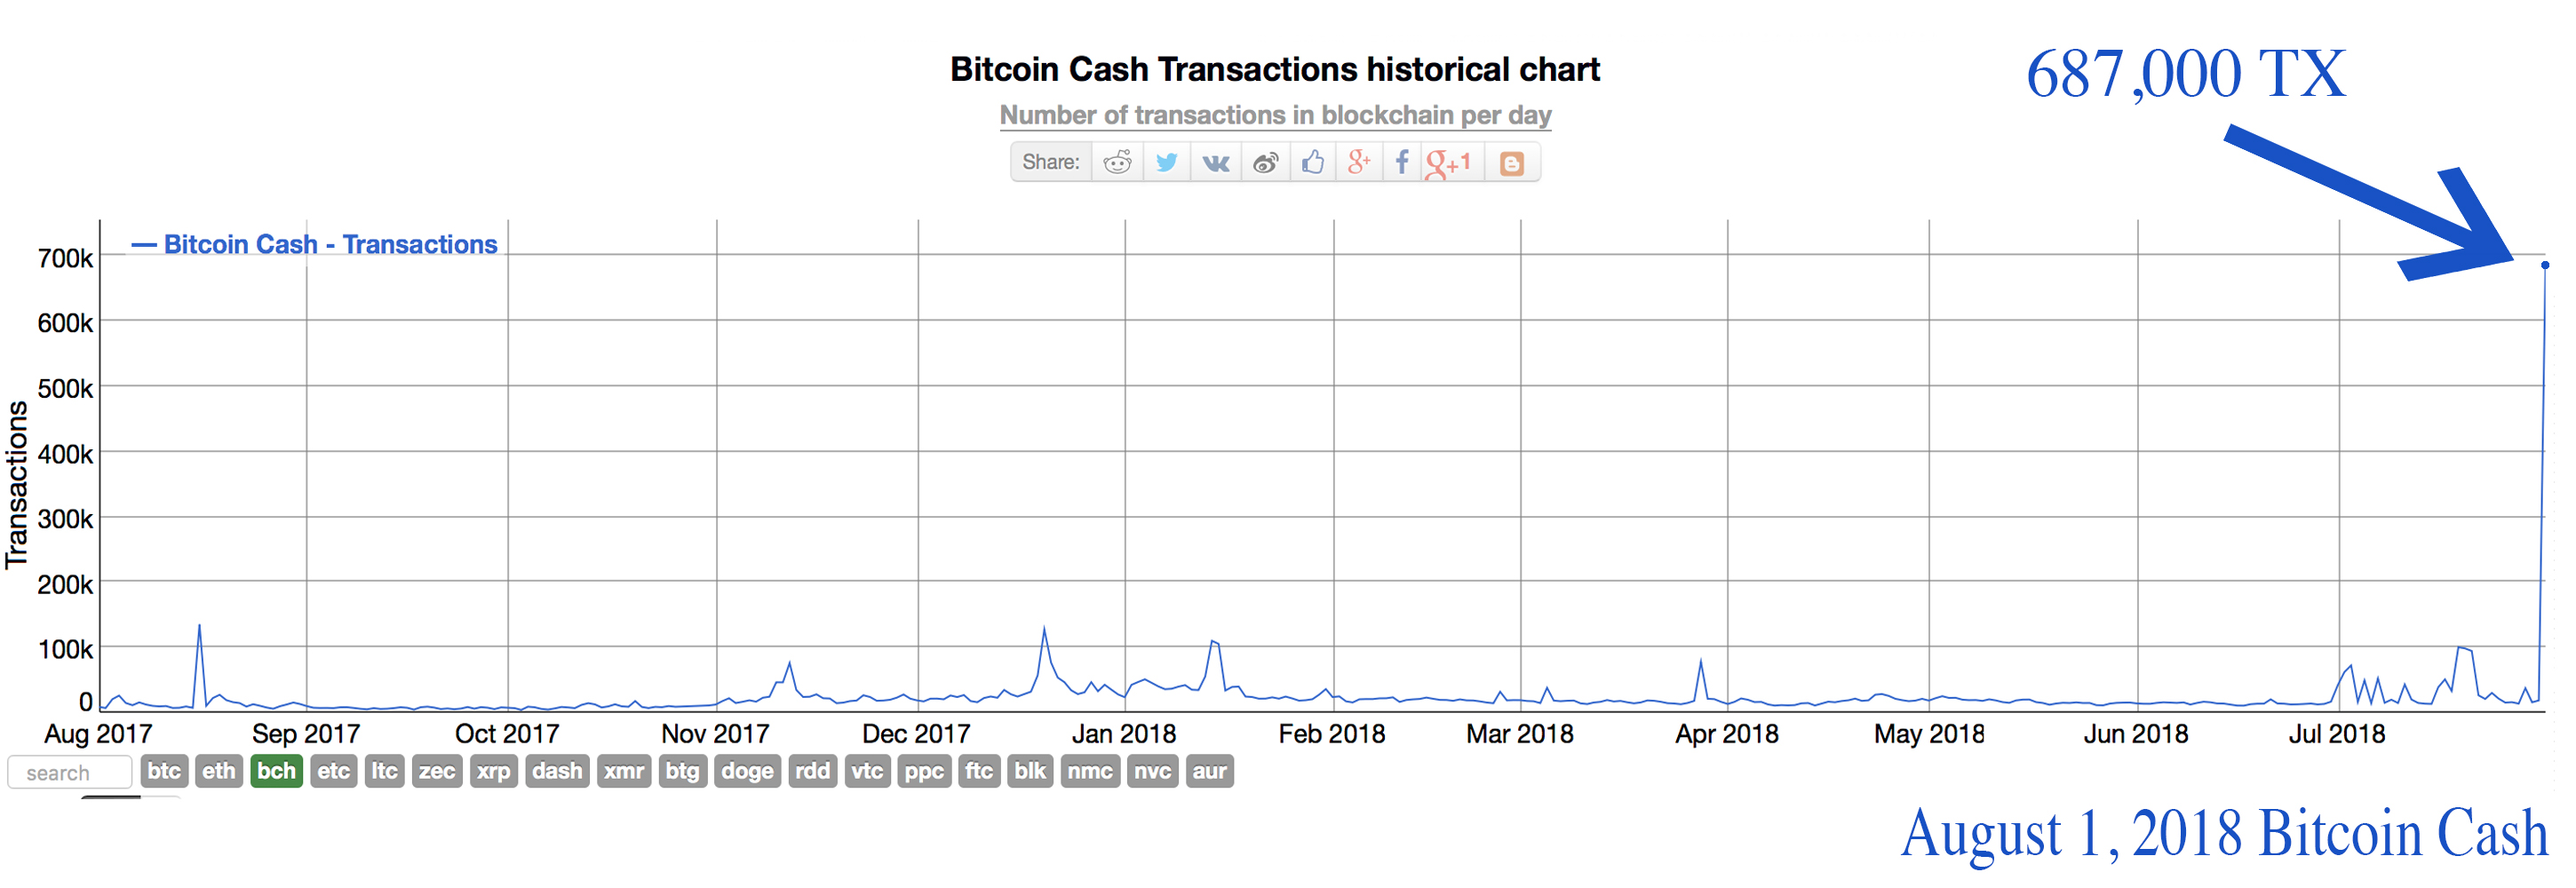 The Bitcoin Cash Network Processed 687,000 Transactions on August 1st